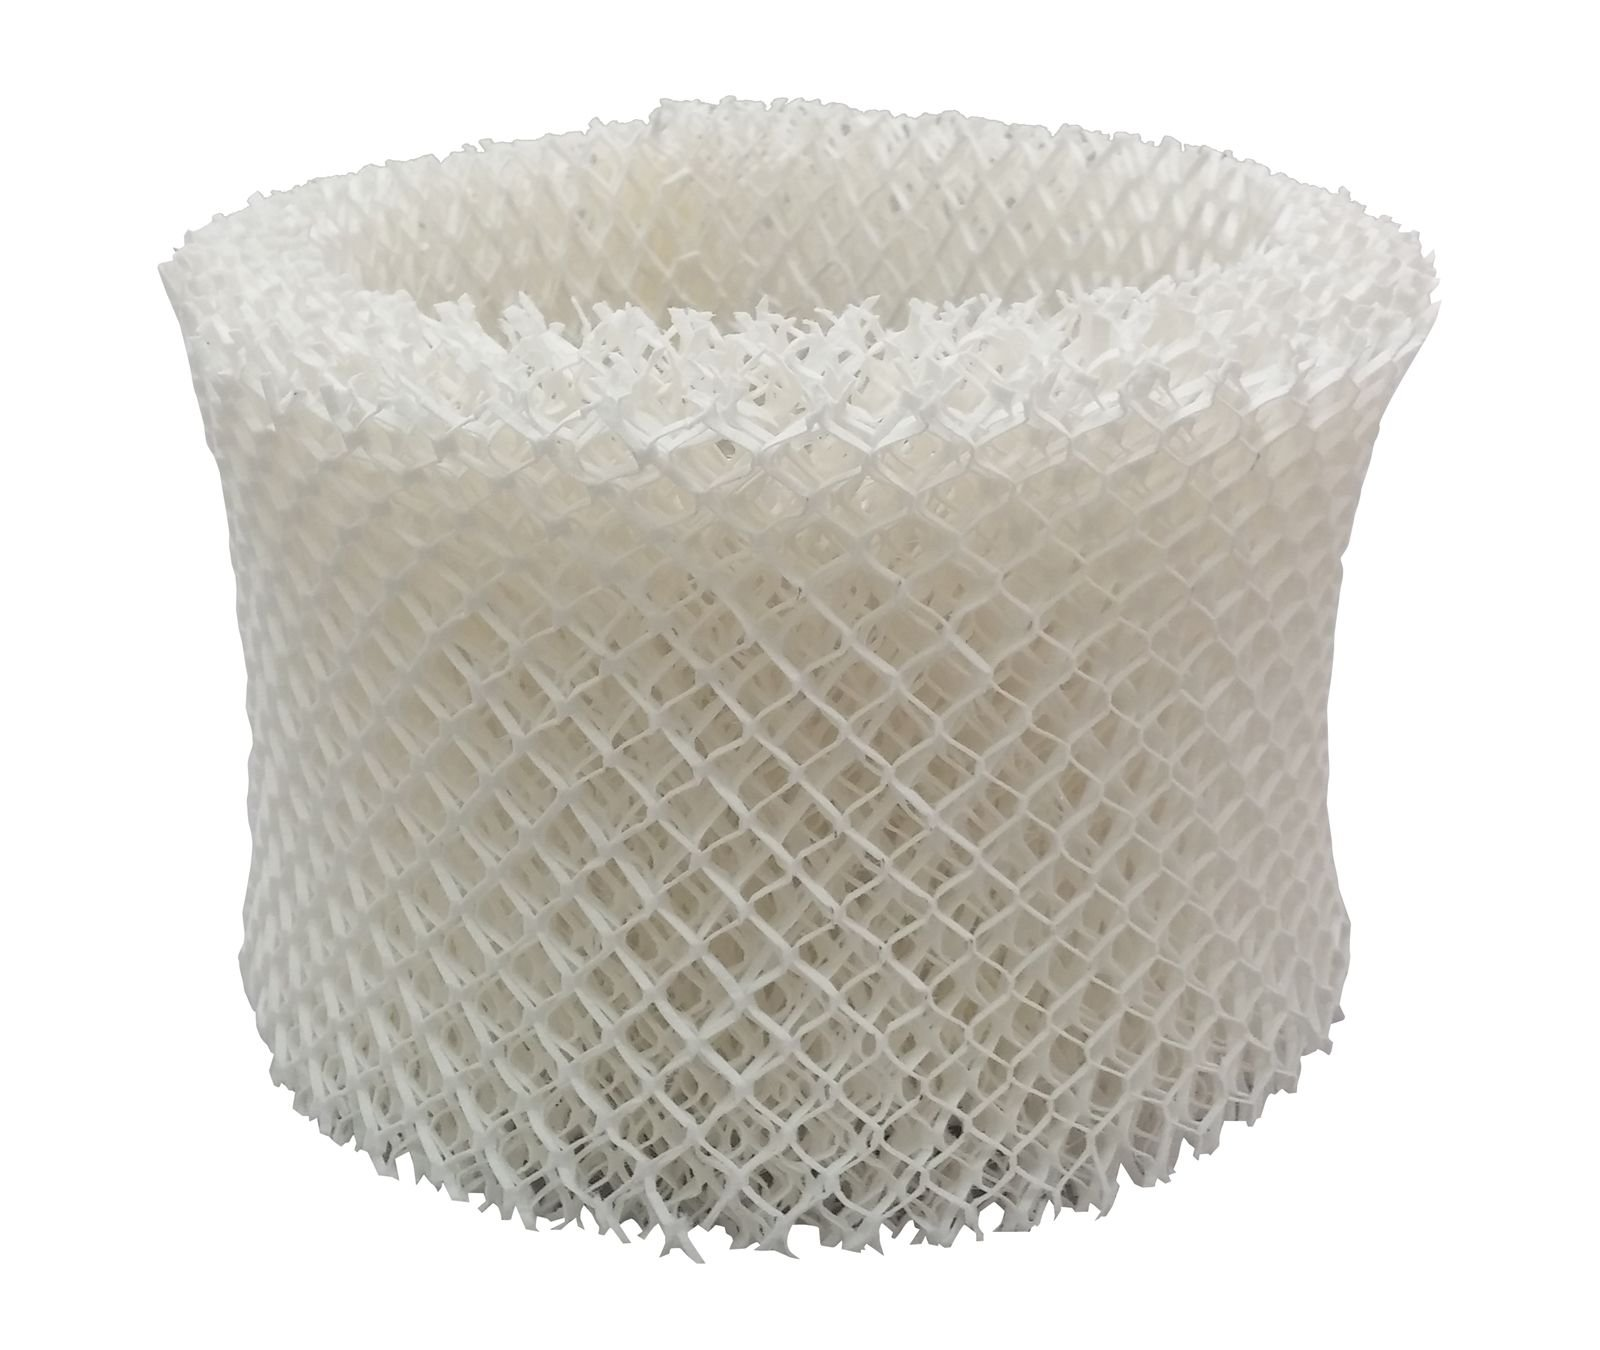 MAYITOP 2Pack Humidifier Filter Wick for Replaces HWF62 HWF212 HC-25 A Natural Breeze Holmes, Sunbeam, Bionaire, Honeywell